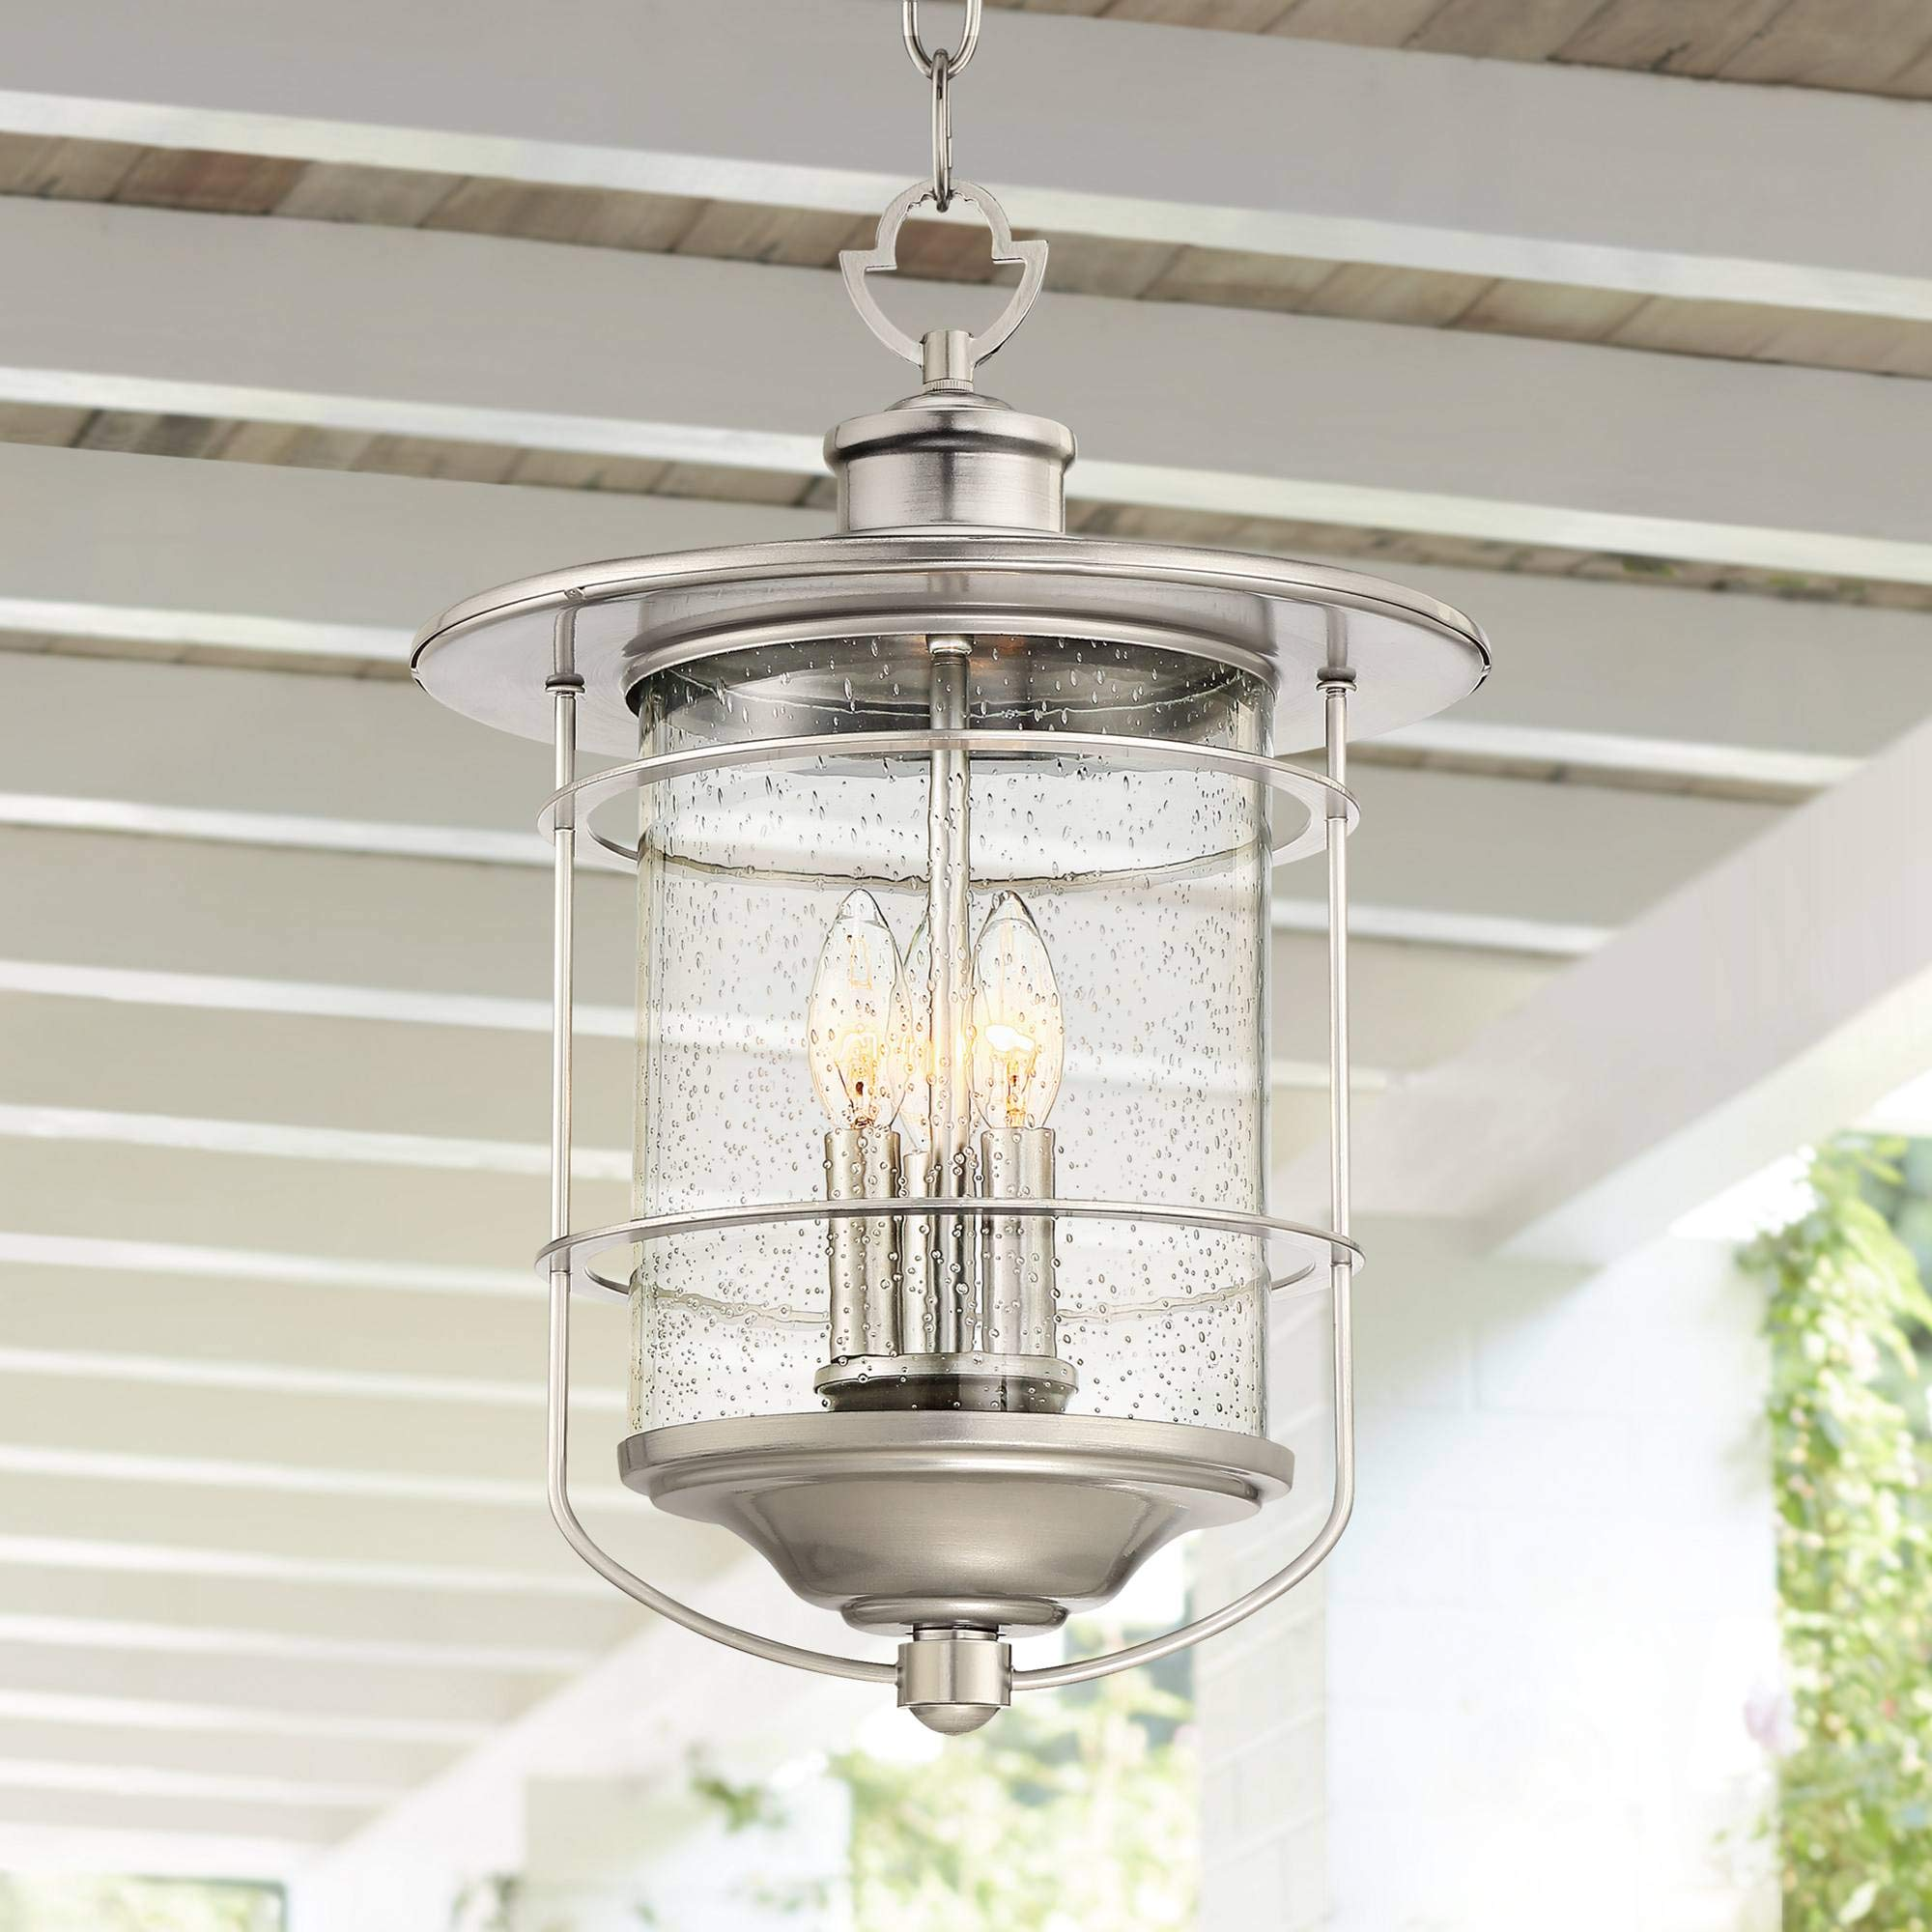 Casa Mirada Industrial Outdoor Light Hanging Lantern Brushed Nickel Damp Rated 19'' Clear Seedy Glass for Porch Patio - Franklin Iron Works